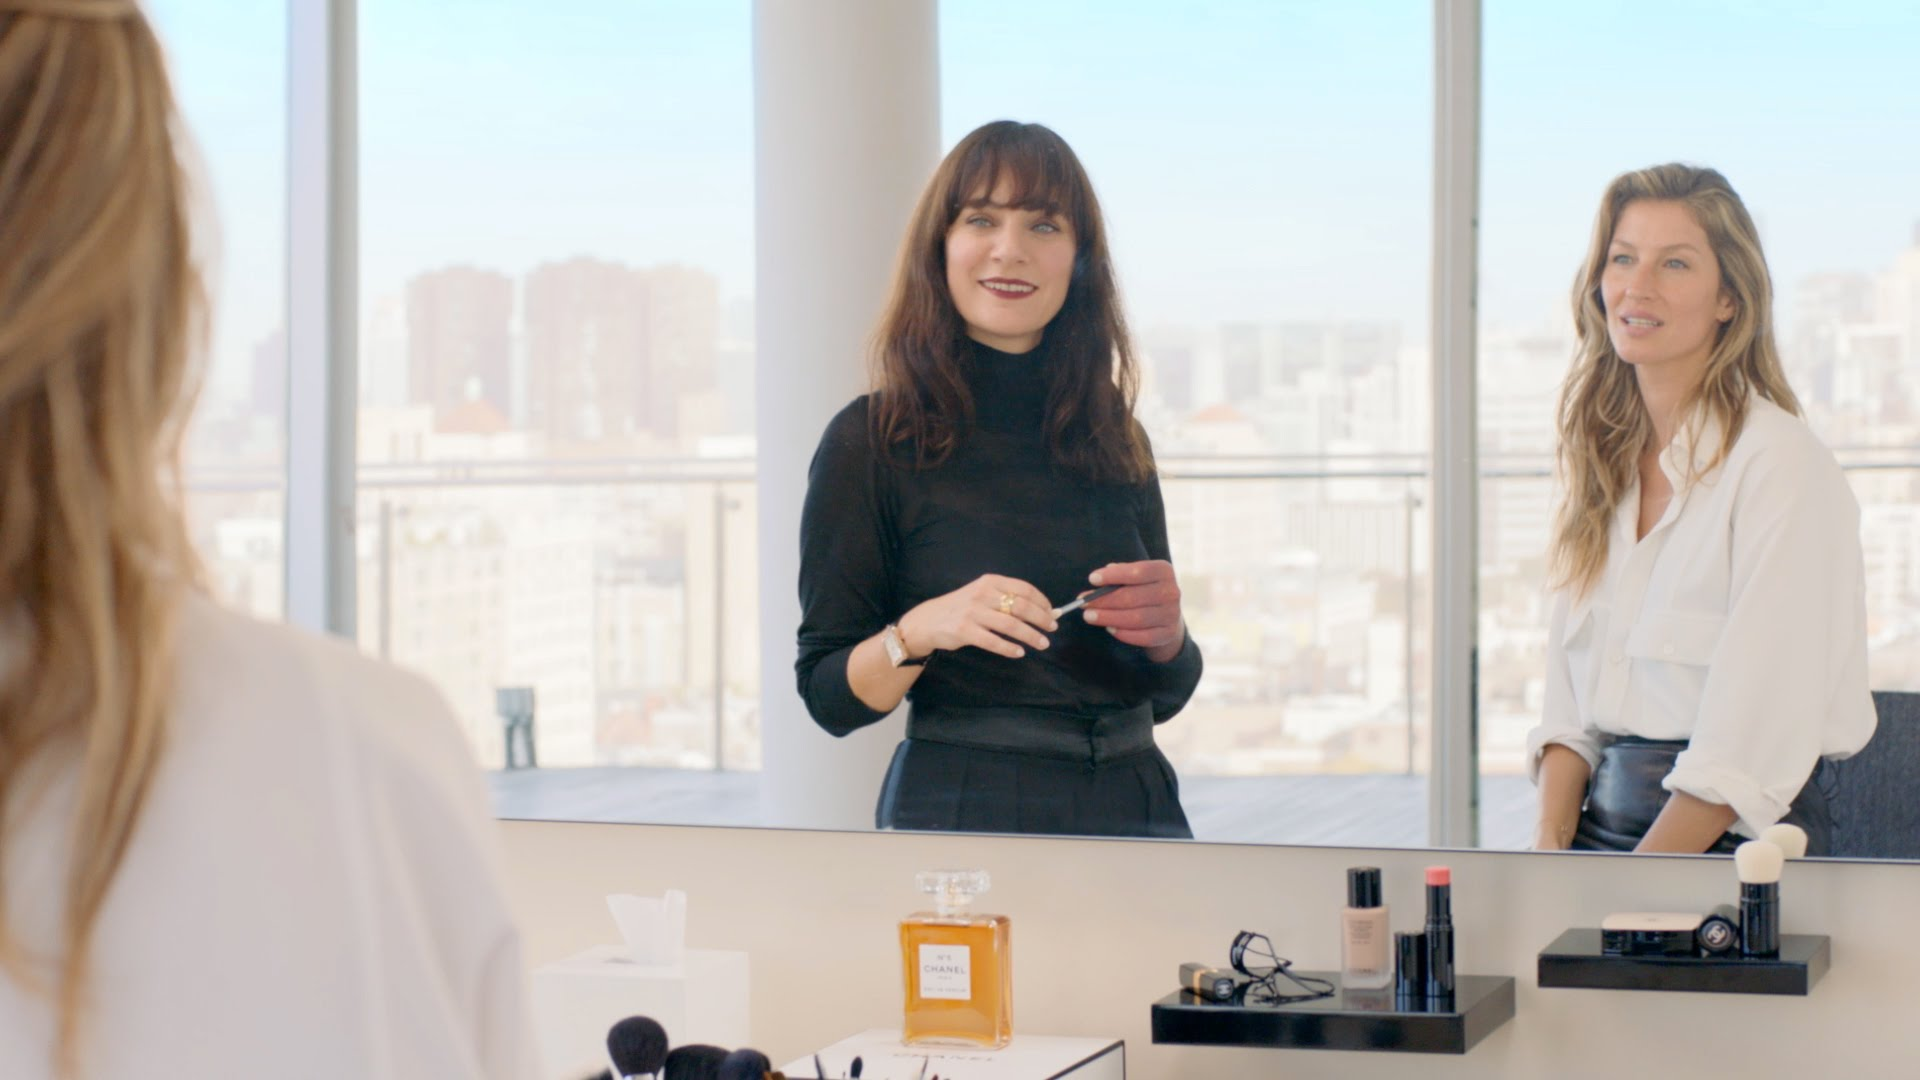 With Lucia Pica, the new CHANEL Global Creative Makeup and Colour Designer, and Gisele Bündchen. In this exclusive 1st episode of CHANEL Beauty Talks, …